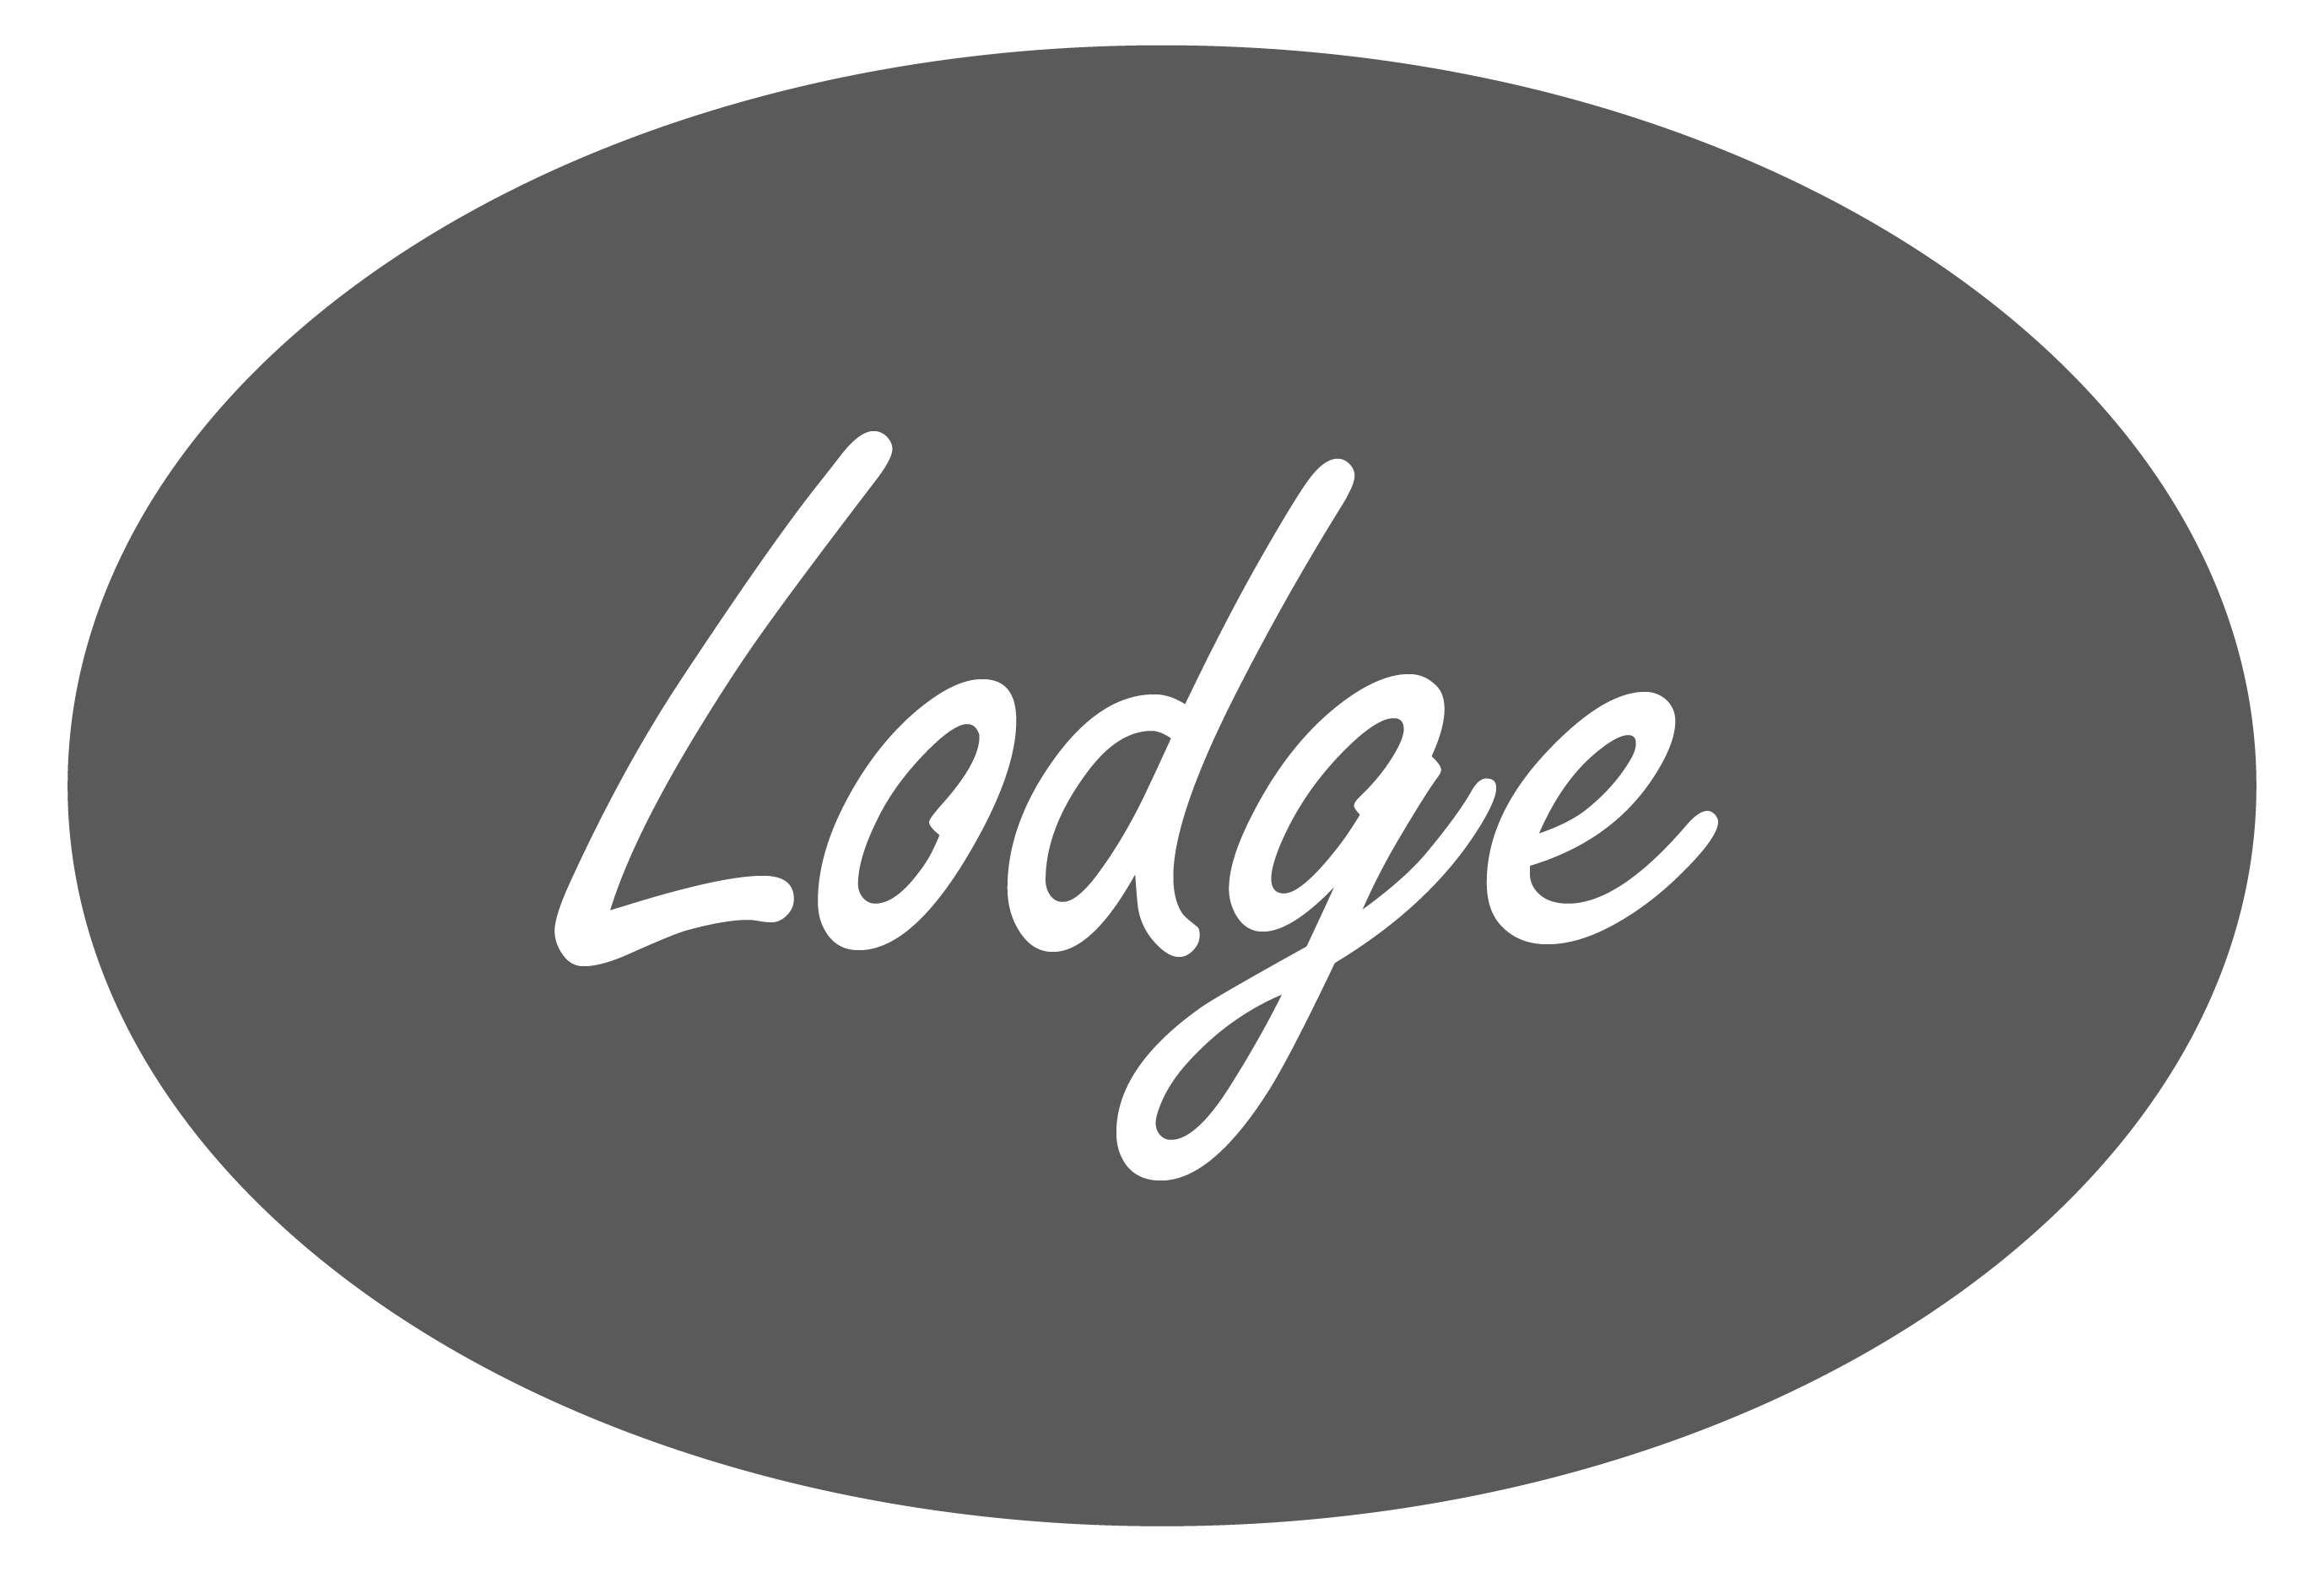 Lodge Chocho Vermietung GmbH